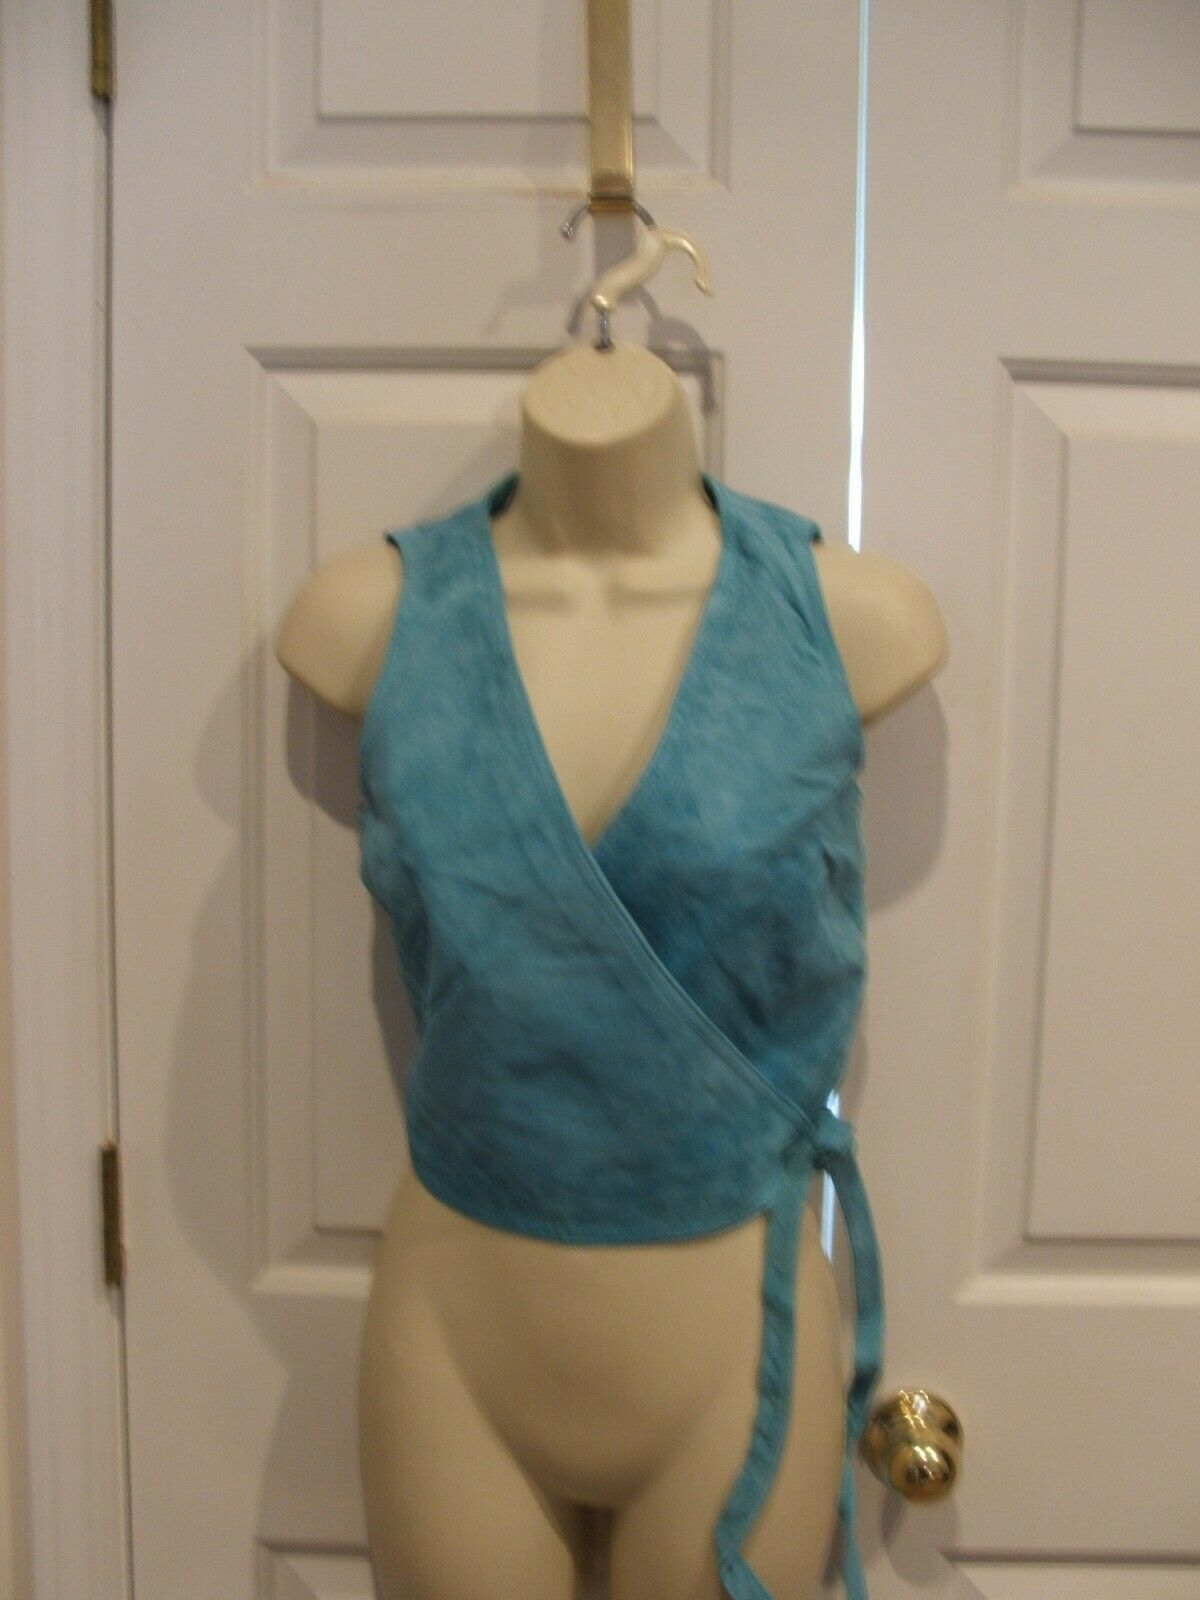 NWT  Newport News Stylework bRIGHT AQUA suede fully lined wrap  vest top sz 8